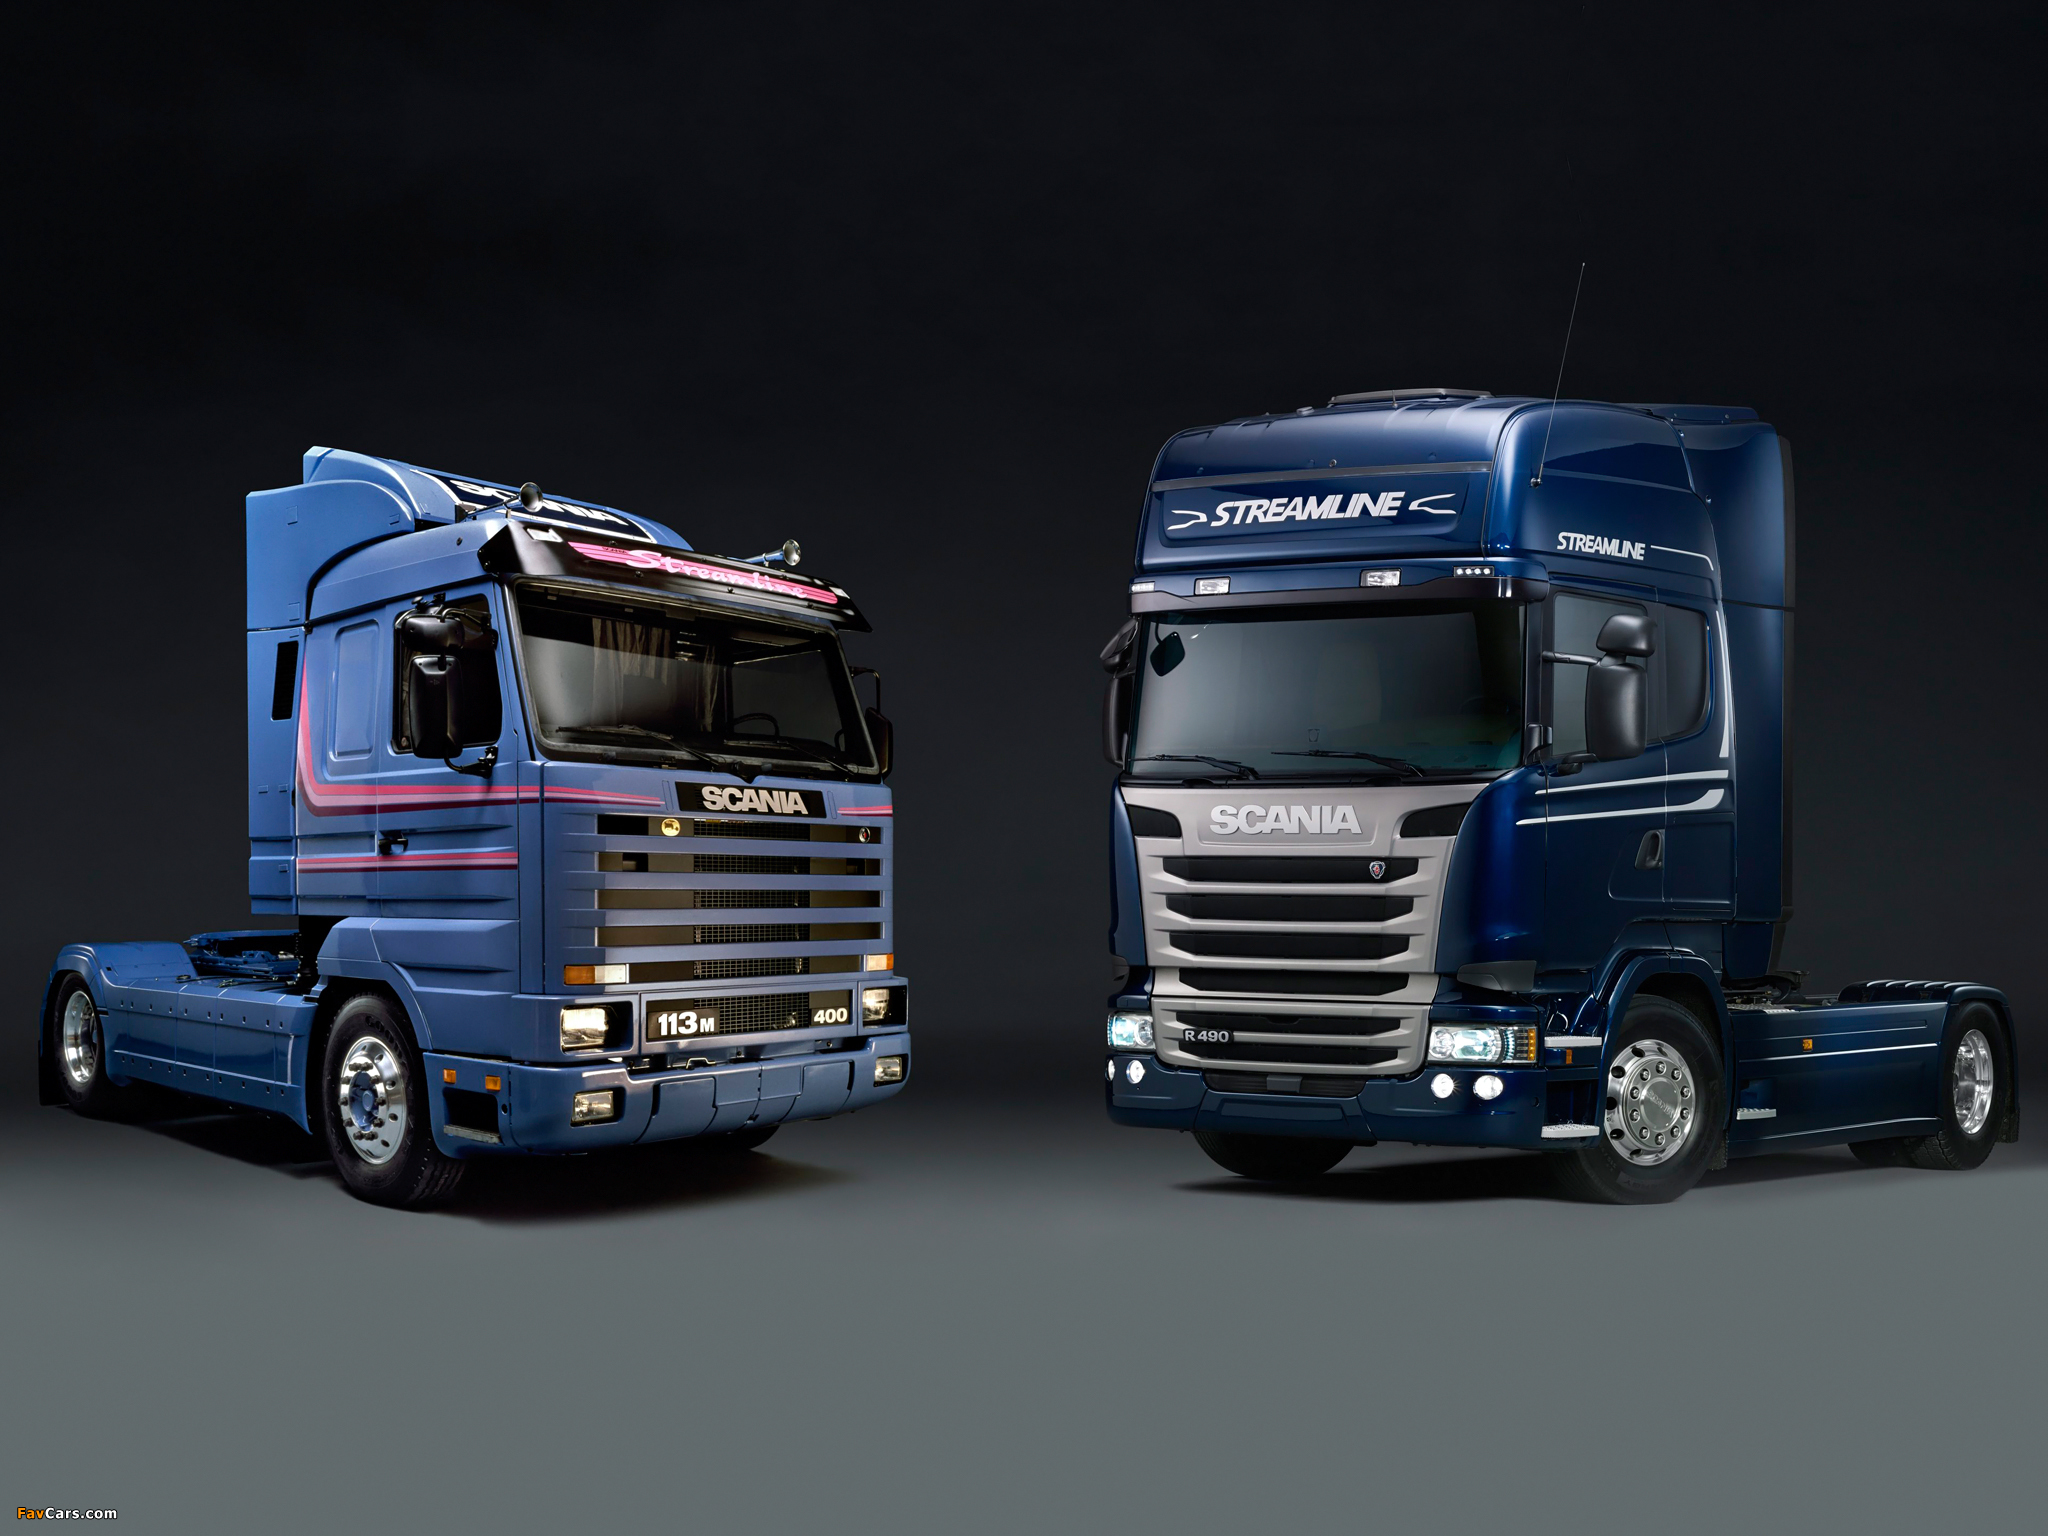 Scania images (2048 x 1536)